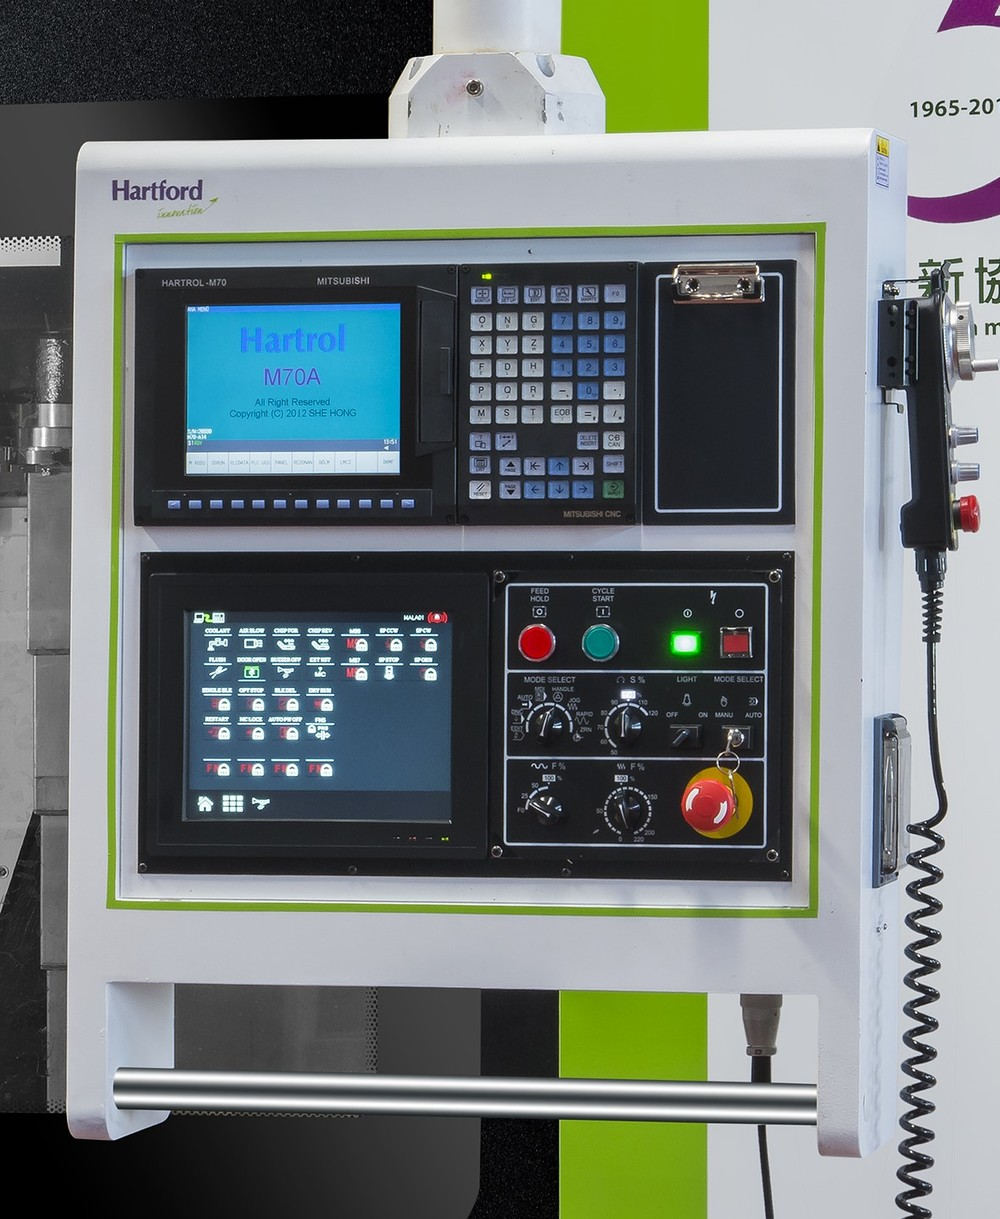 Controller Upgrades  - Fanuc Function: AI, Contour Control-- II, Preread ahead 200 Blocks;  - Fanuc Function: Data server,1 gig of memory;                        - NANO smoothing (Includes Contour control II)  - Polar coordinate, command (J818)  -Automatic Power Off, Included